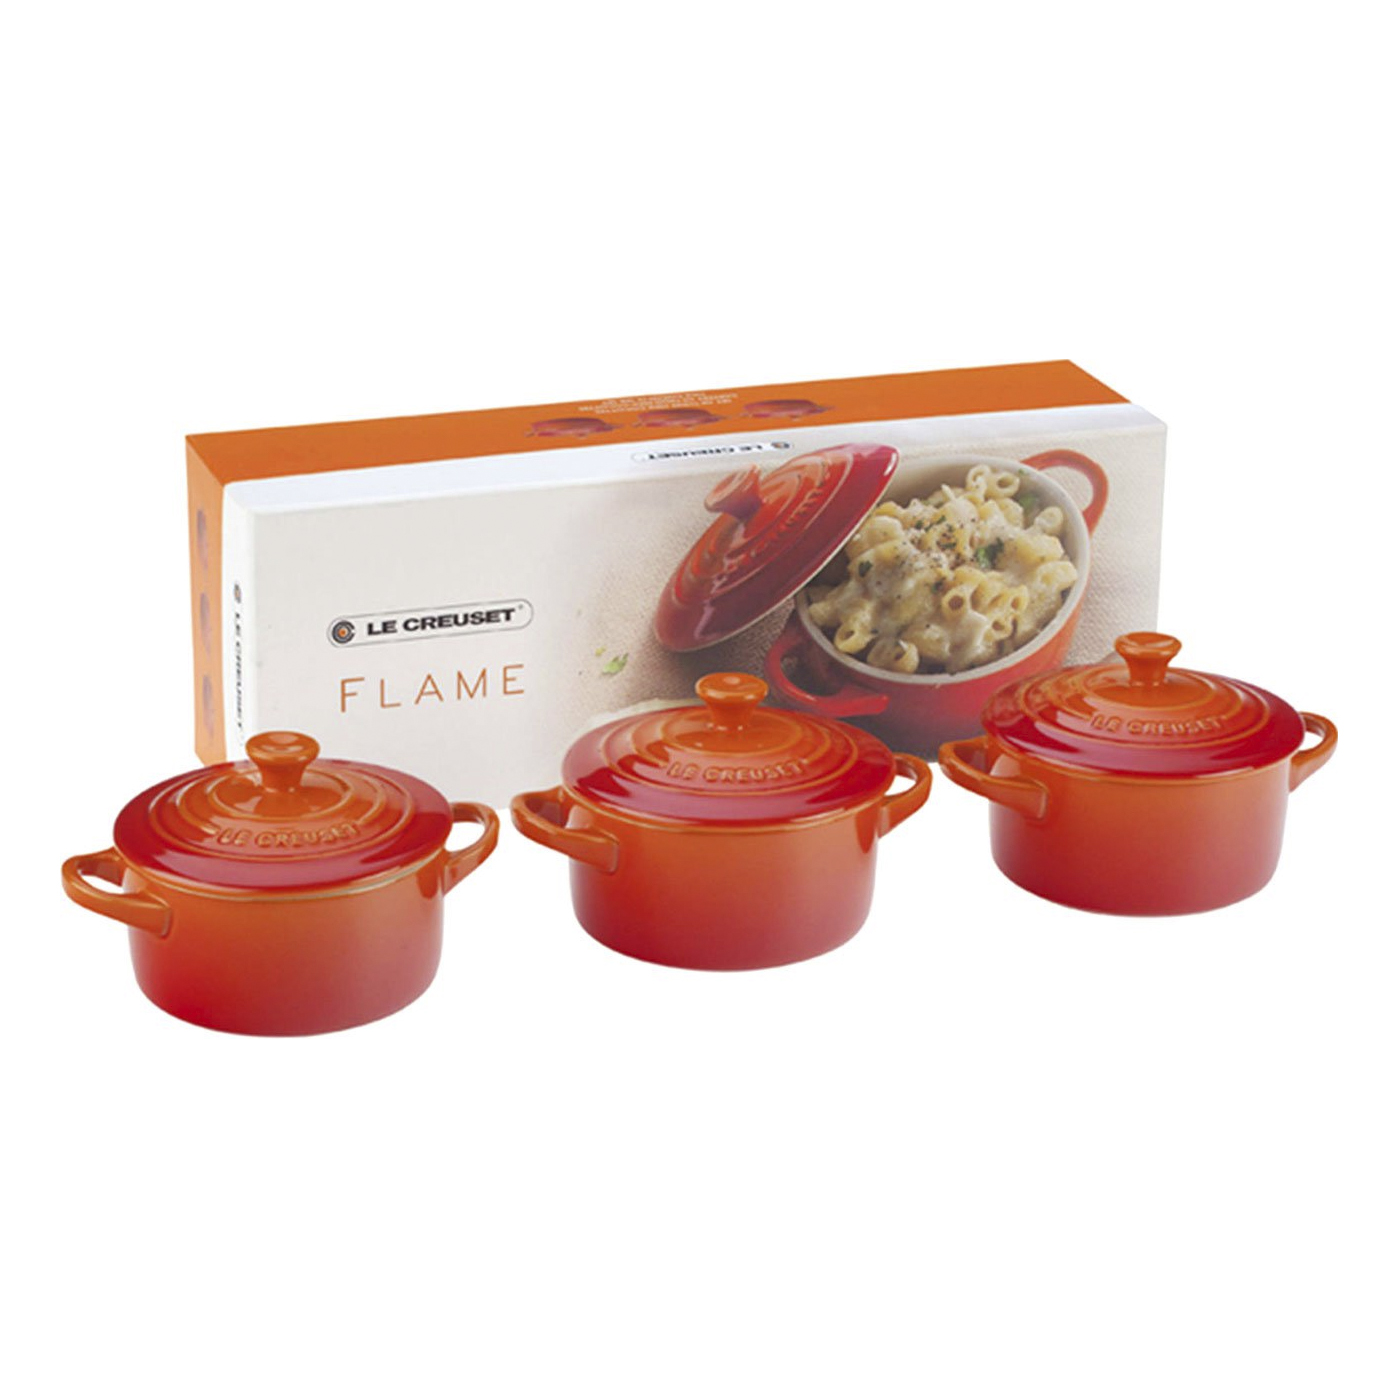 le creuset mini cocotte gift set set of 3 solids 8 oz each flame pg1163 082. Black Bedroom Furniture Sets. Home Design Ideas